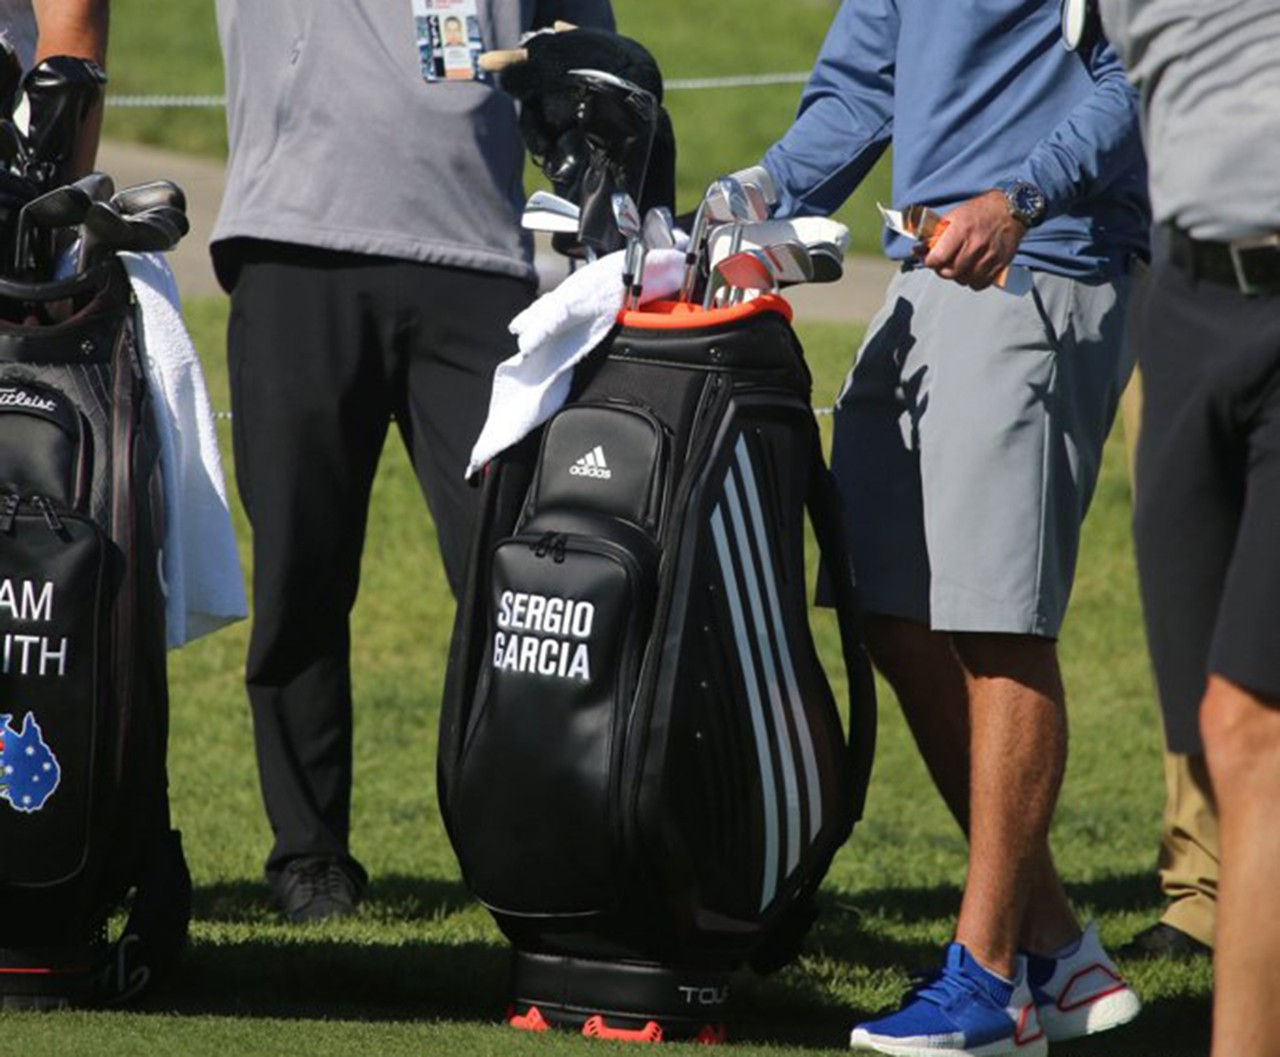 10-sergio-garcia-bag